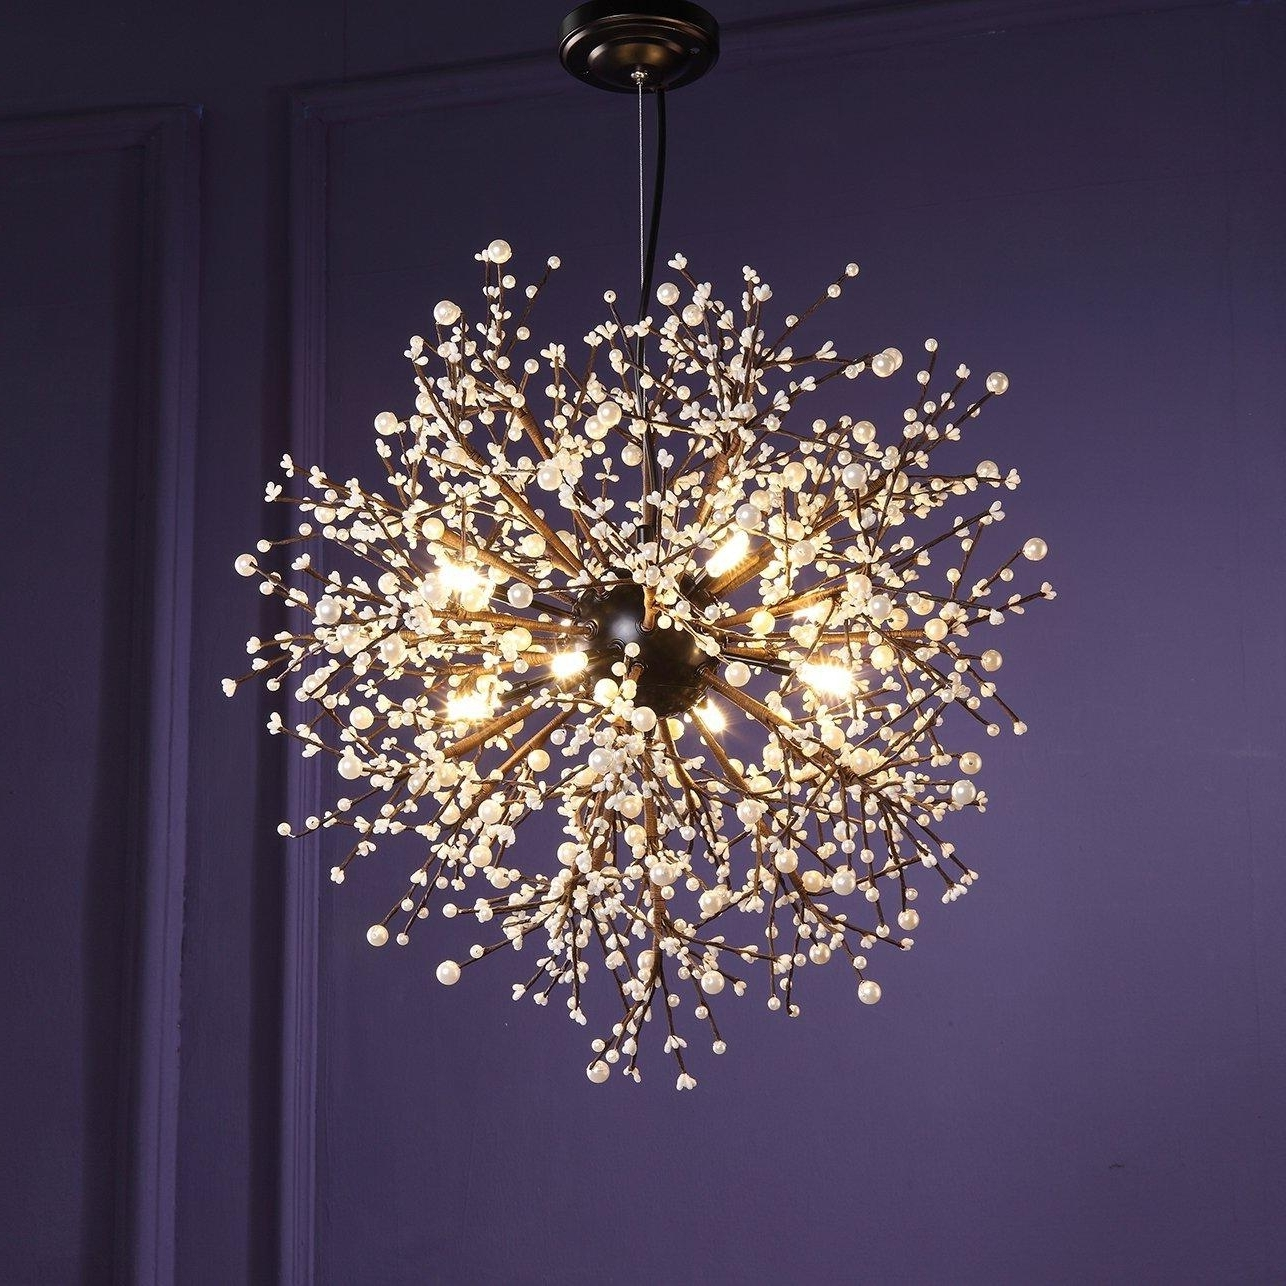 Modern Chandeliers Firework Led Vintage Wrought Iron Chandelier For Popular Ultra Modern Chandeliers (View 7 of 20)